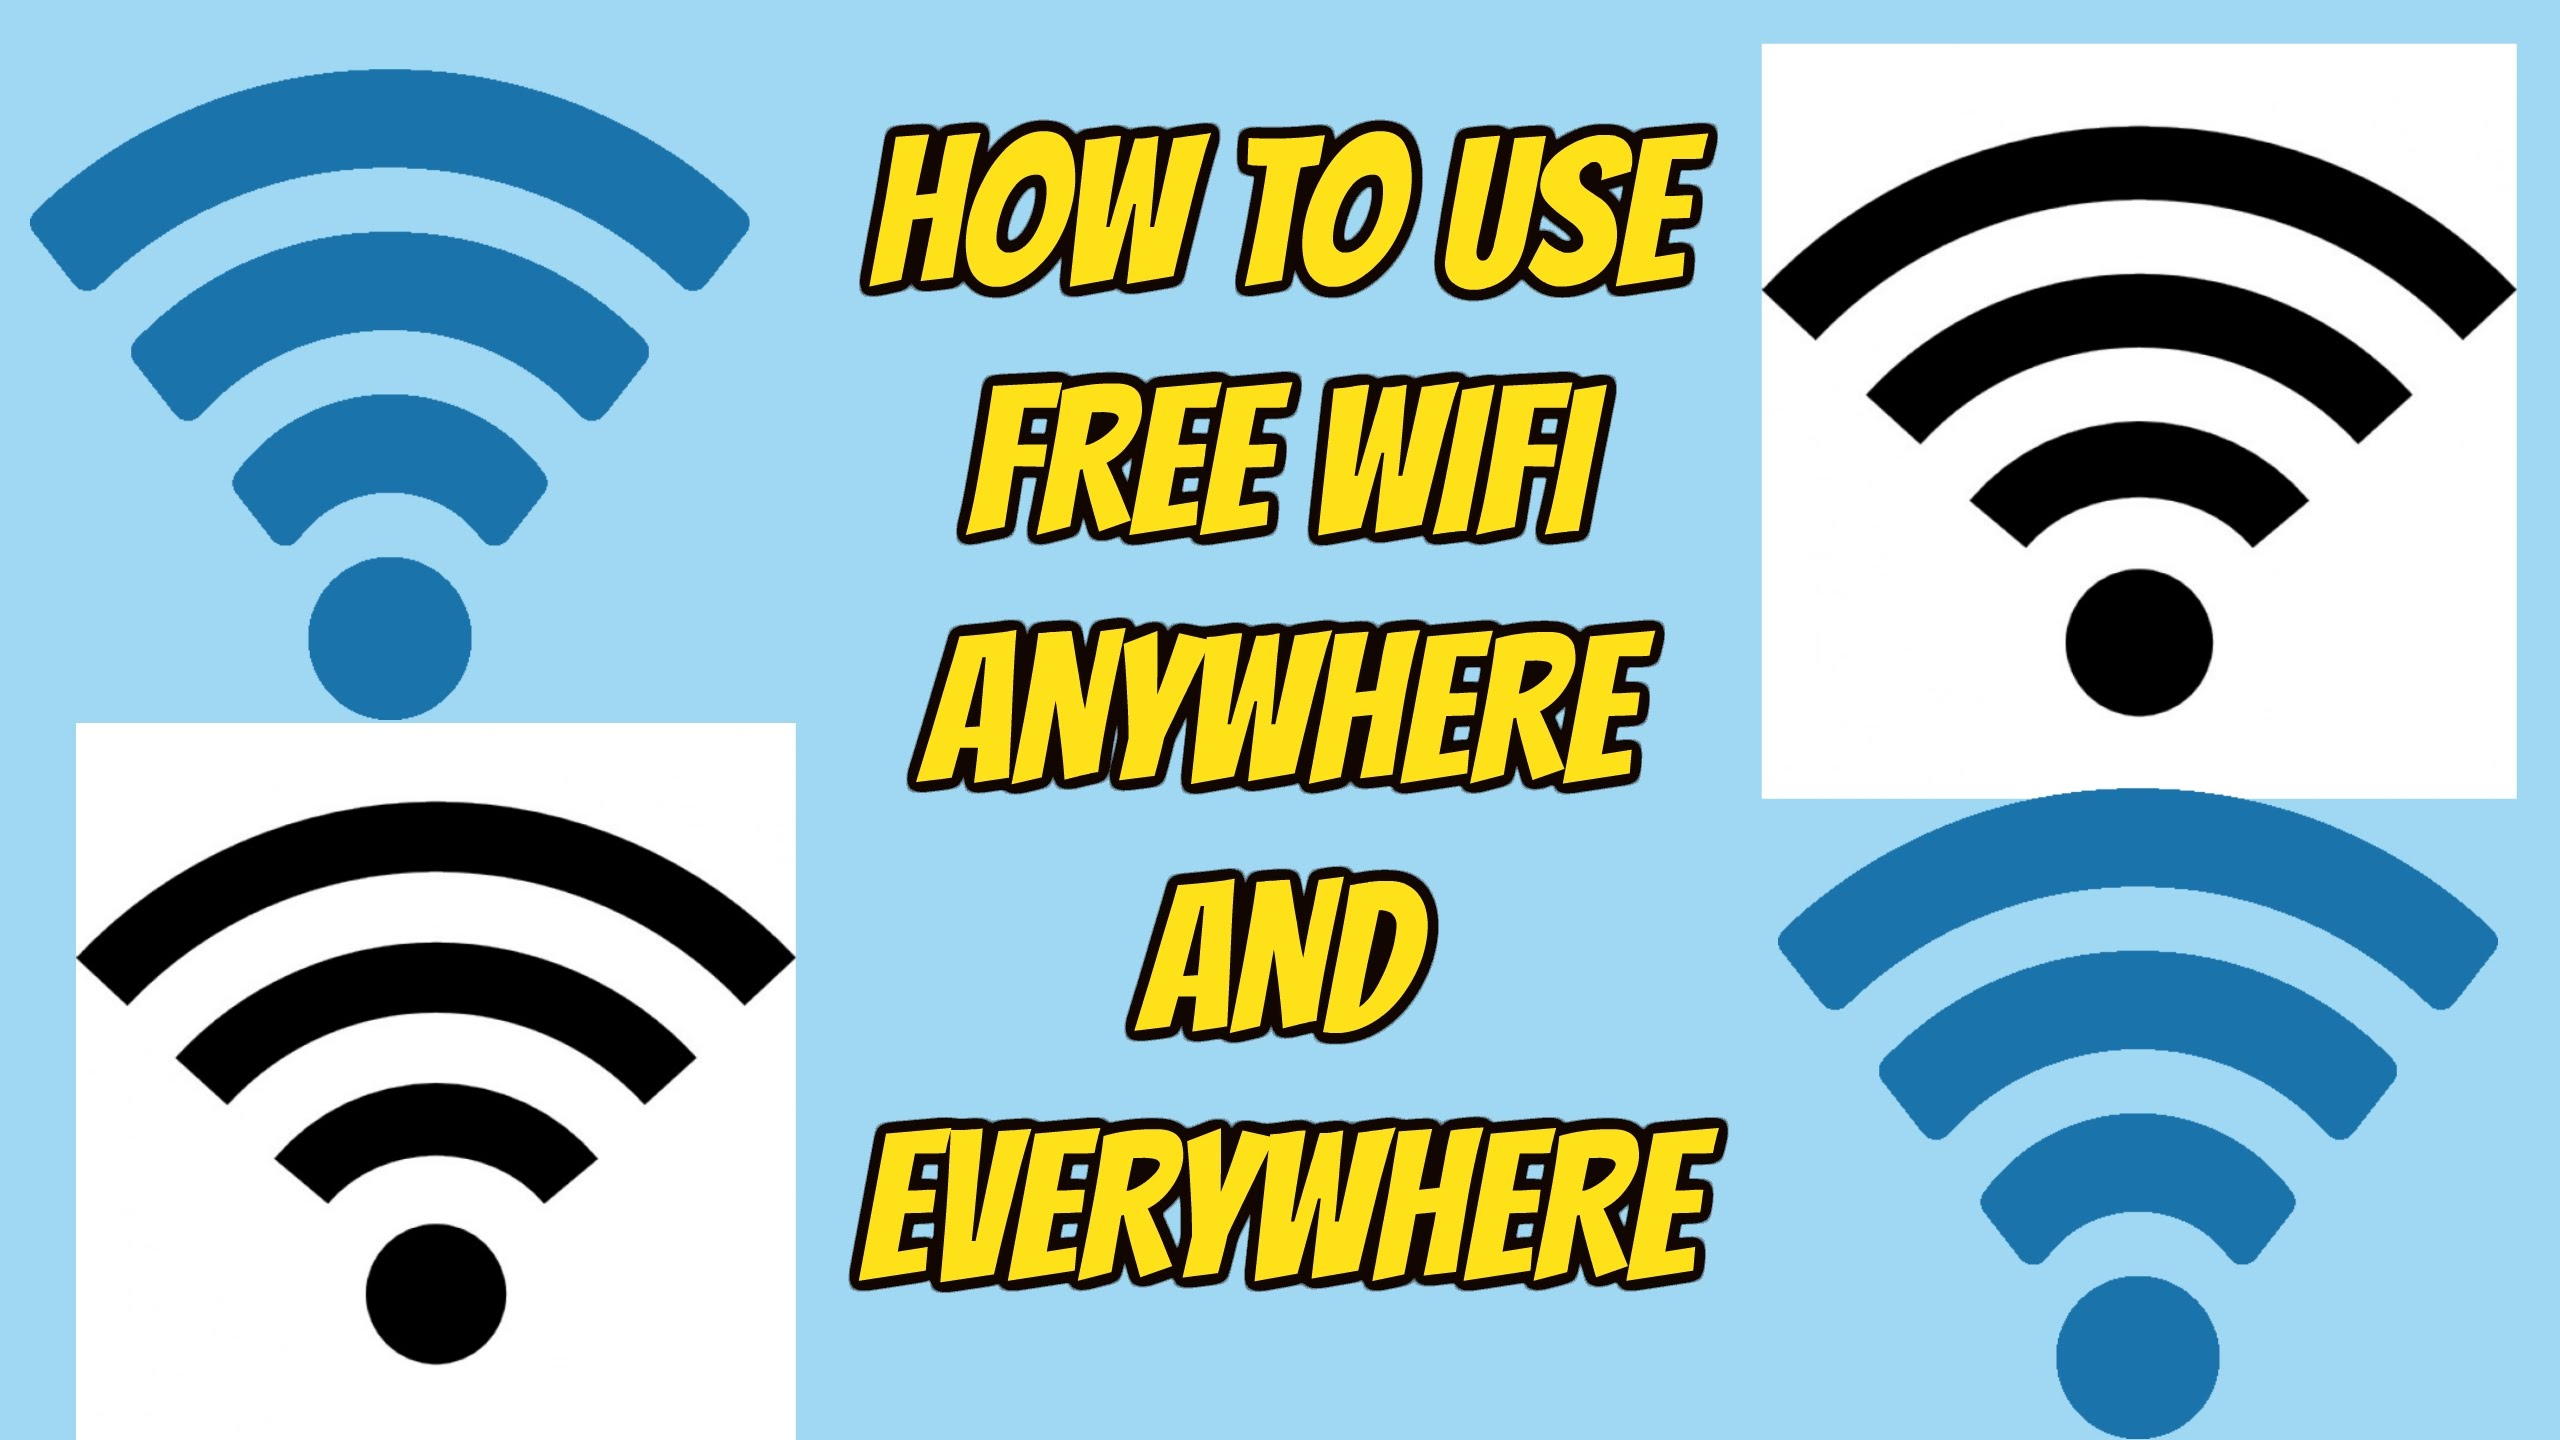 How to used free wifi anywhere